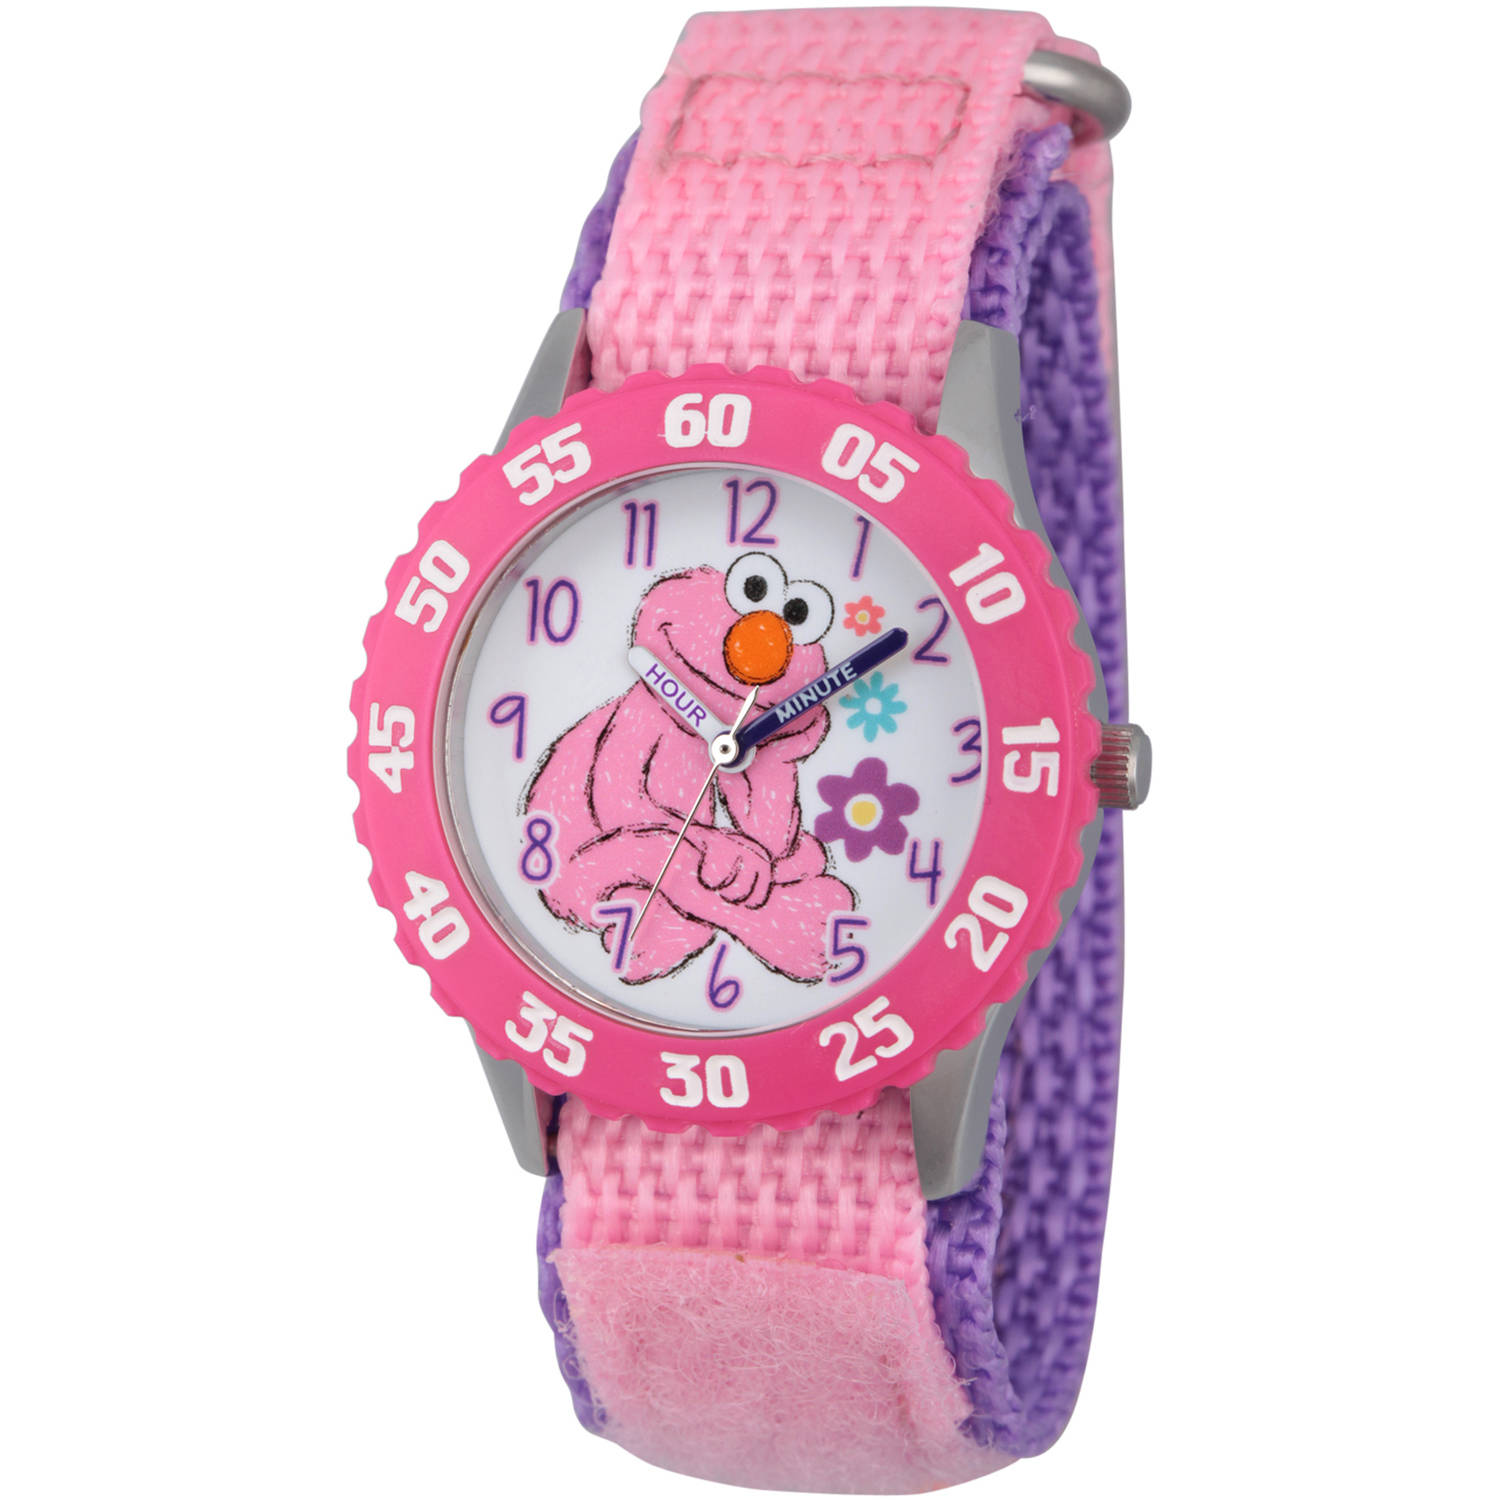 Sesame Street Girls' Stainless Steel Time Teacher Watch, Pink Bezel, Pink Hook and Loop Nylon Strap with Purple Backing